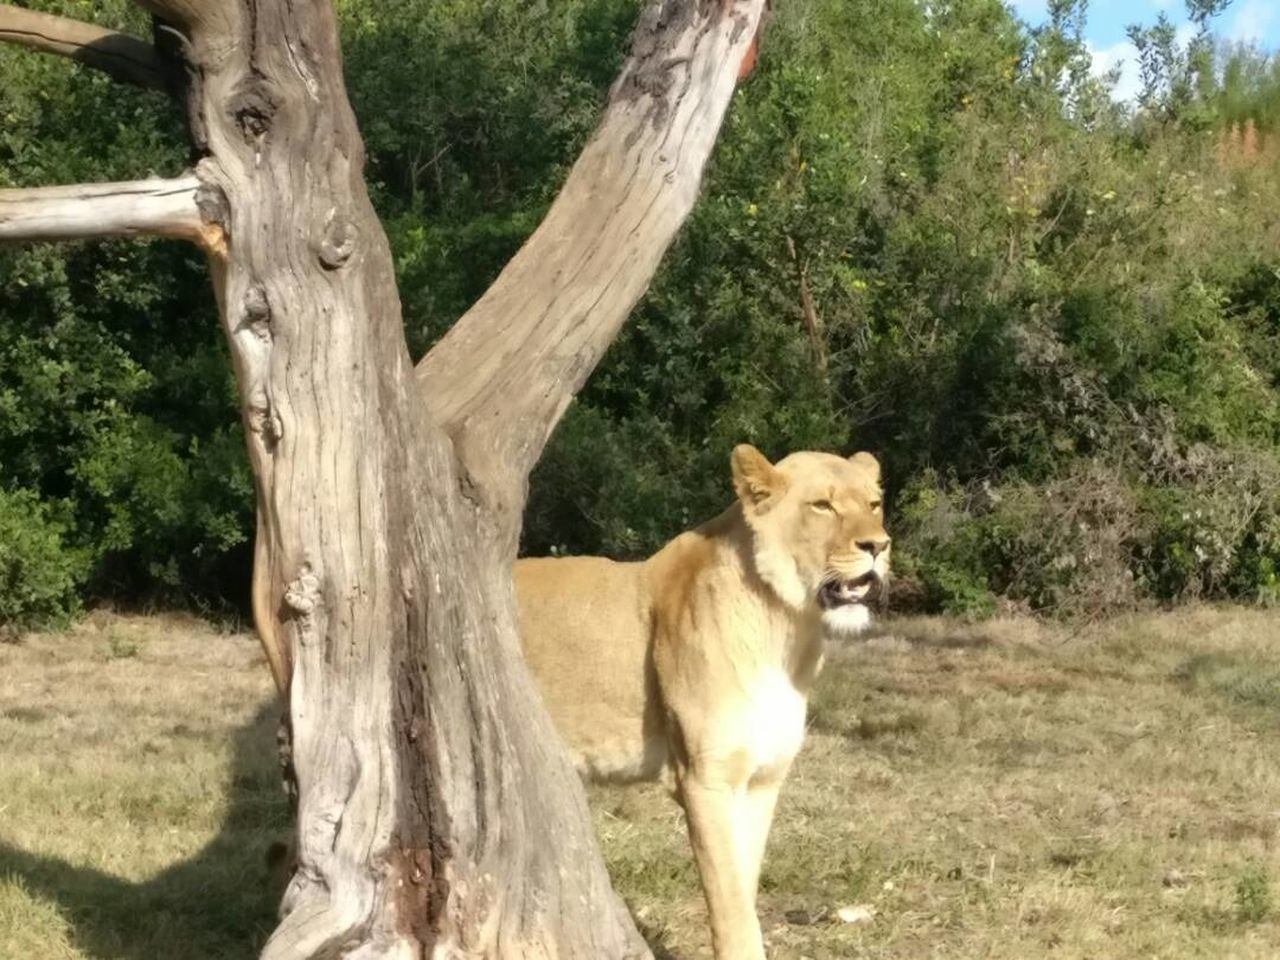 Tree Animal Themes Mammal One Animal Tree Trunk Day Nature Animals In The Wild No People Outdoors Lion - Feline Grass Outdoor Photography Travel Destinations Lions EyeEmNewHere Animals In The Wild Tree Trunk Tree Lion Sunlight Lioness Nature Sky Animal Wildlife